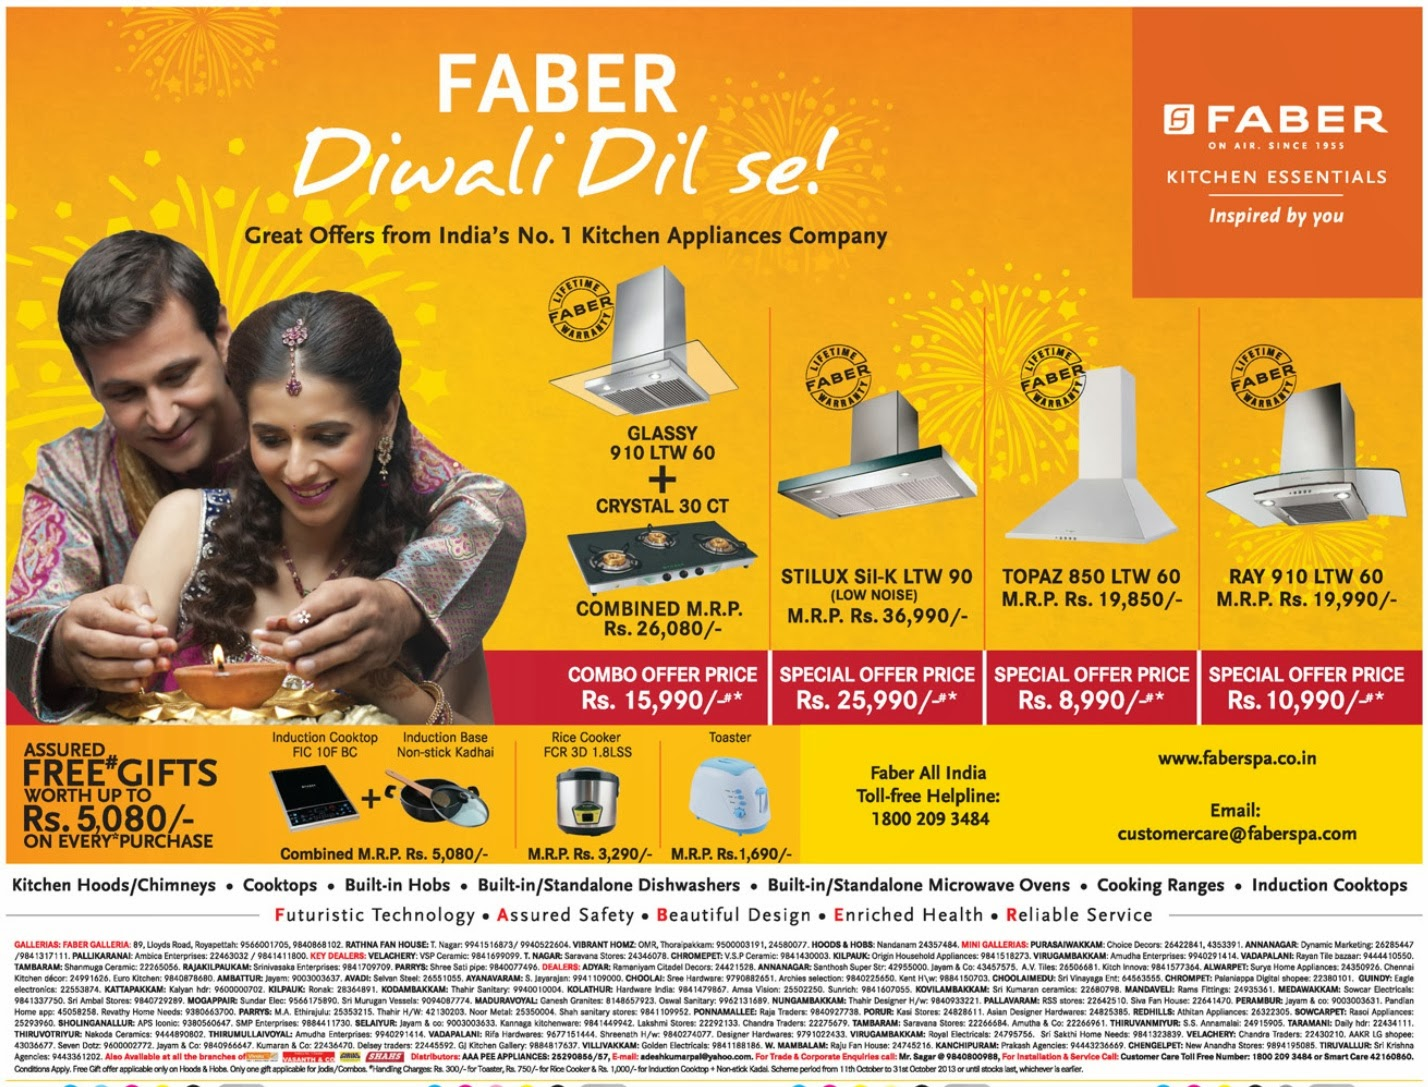 Uncategorized Faber Kitchen Appliances post free ads in india buy sell promote faber diwali offer kitchen appliances company chennai